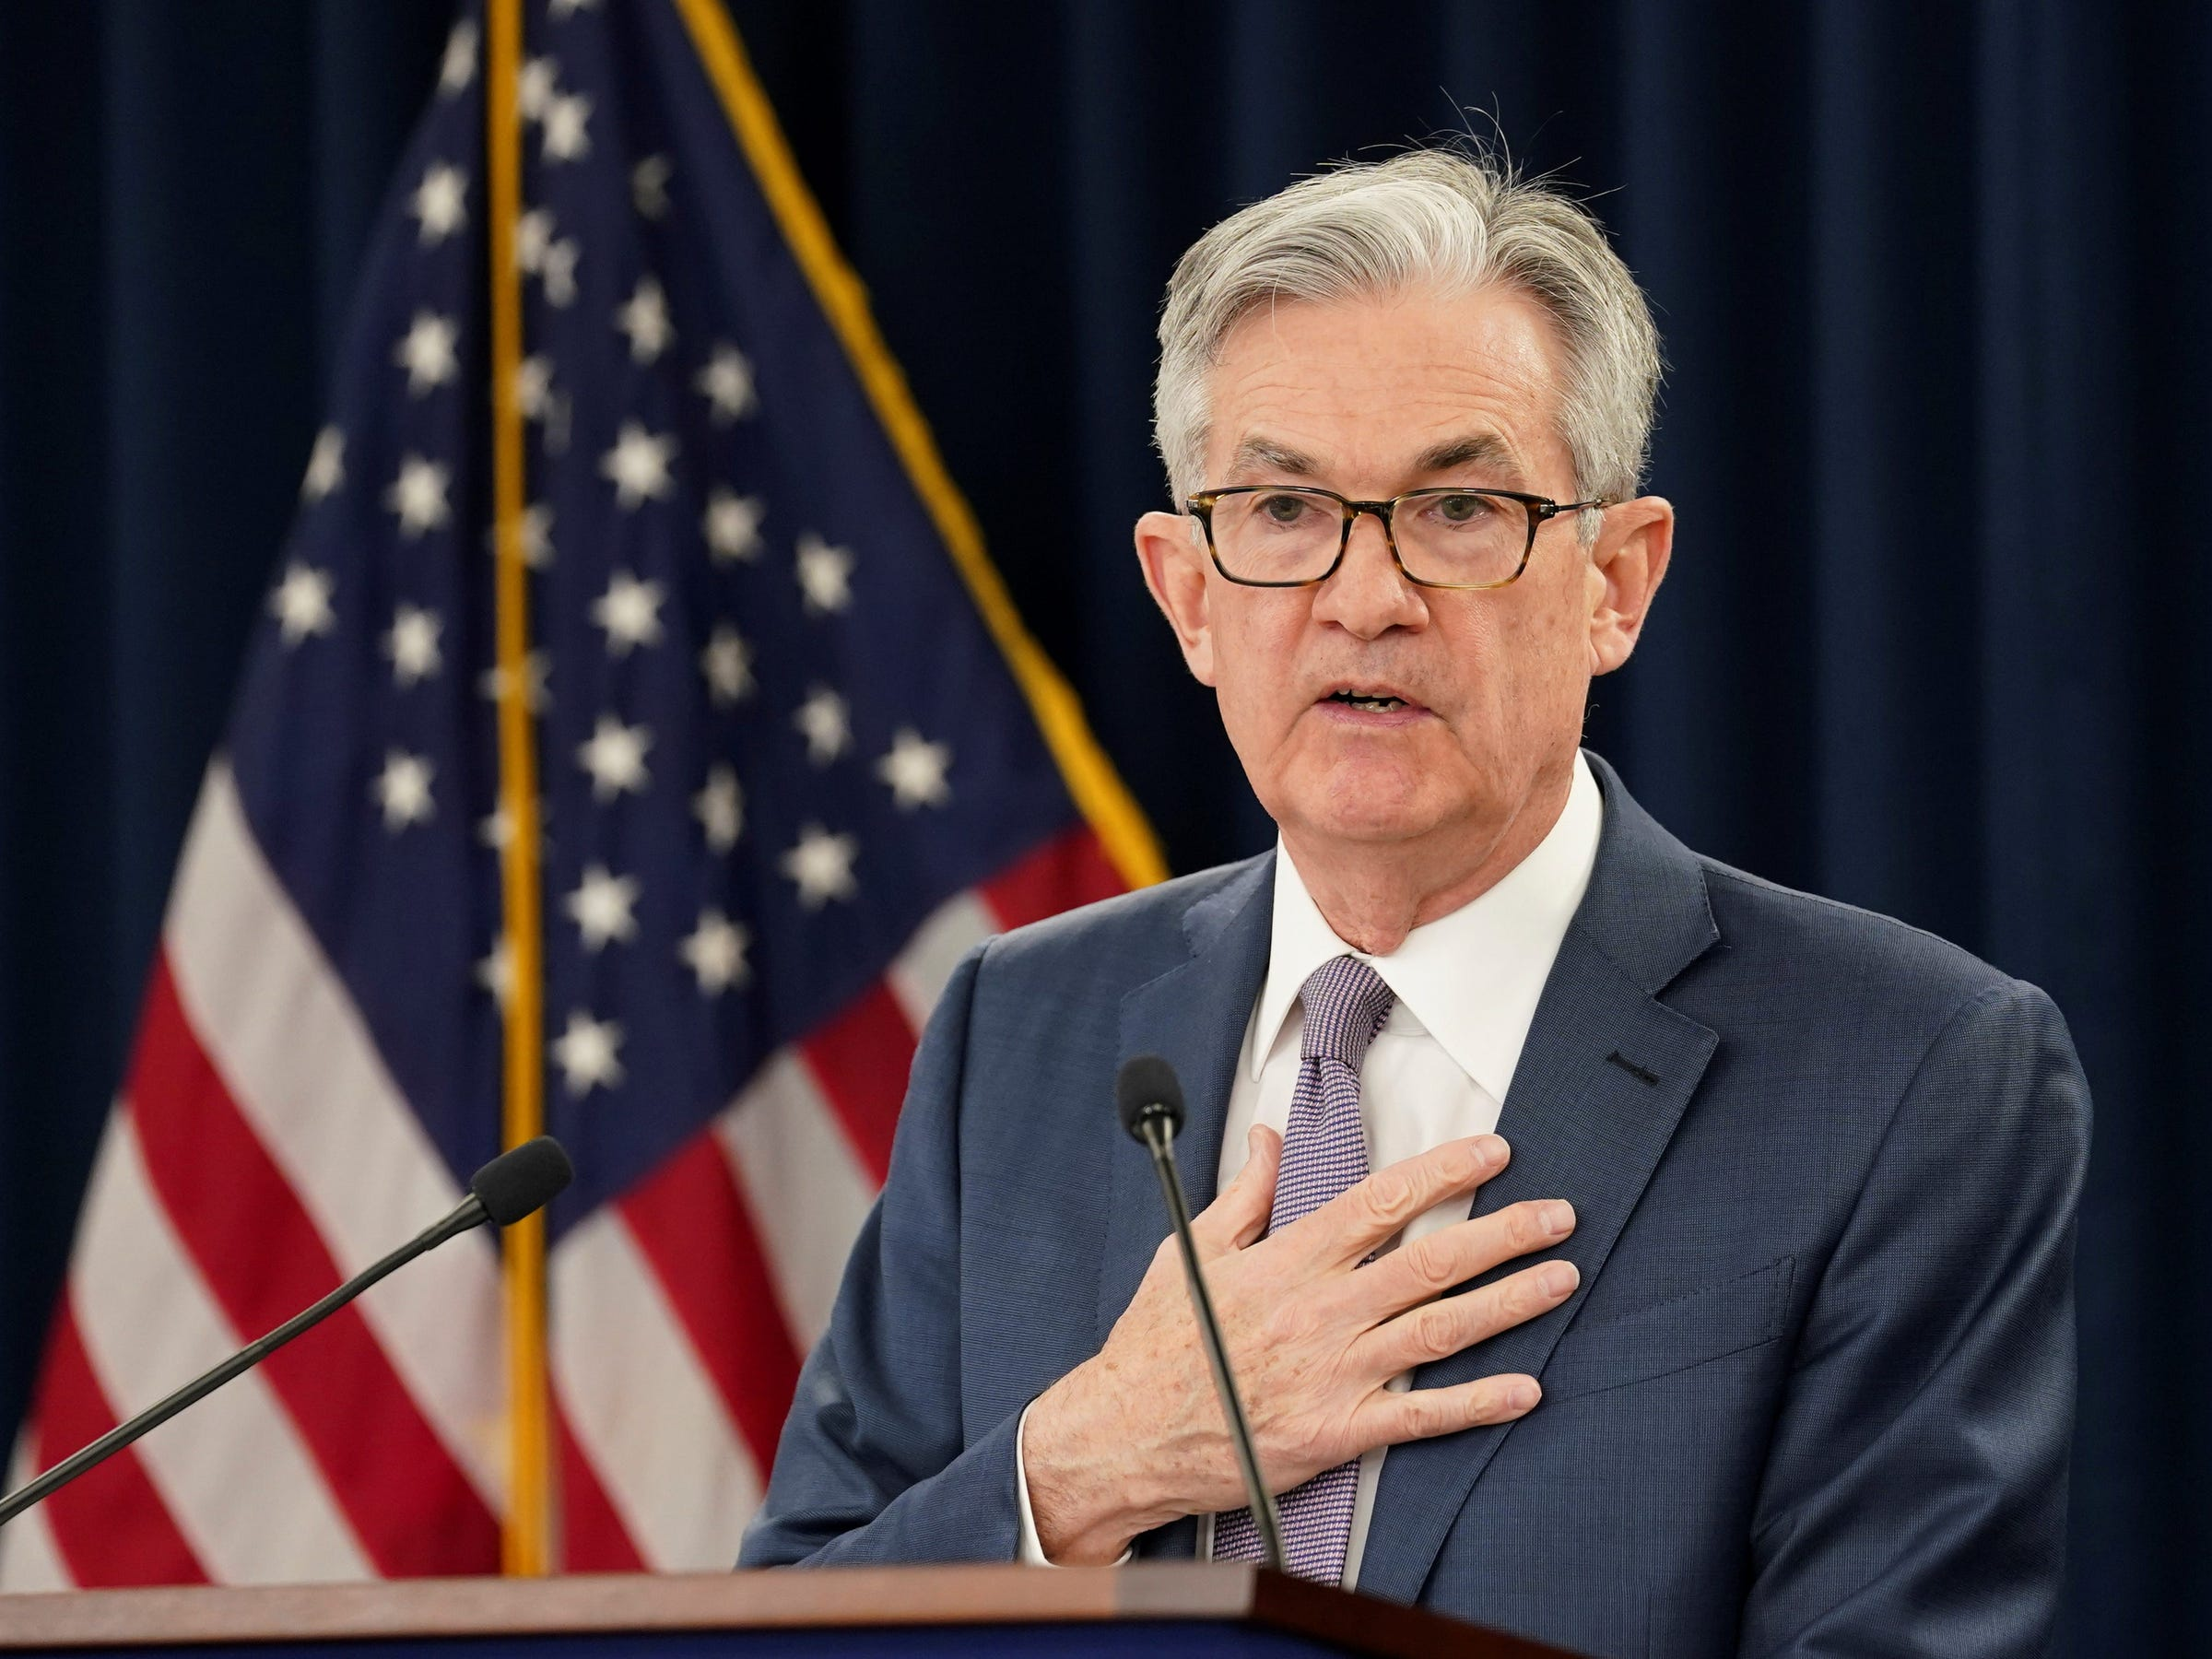 FILE PHOTO: U.S. Federal Reserve Chairman Jerome Powell speaks to reporters after the Federal Reserve cut interest rates in an emergency move designed to shield the world's largest economy from the impact of the coronavirus, during a news conference in Washington, U.S., March 3, 2020. REUTERS/Kevin Lamarque